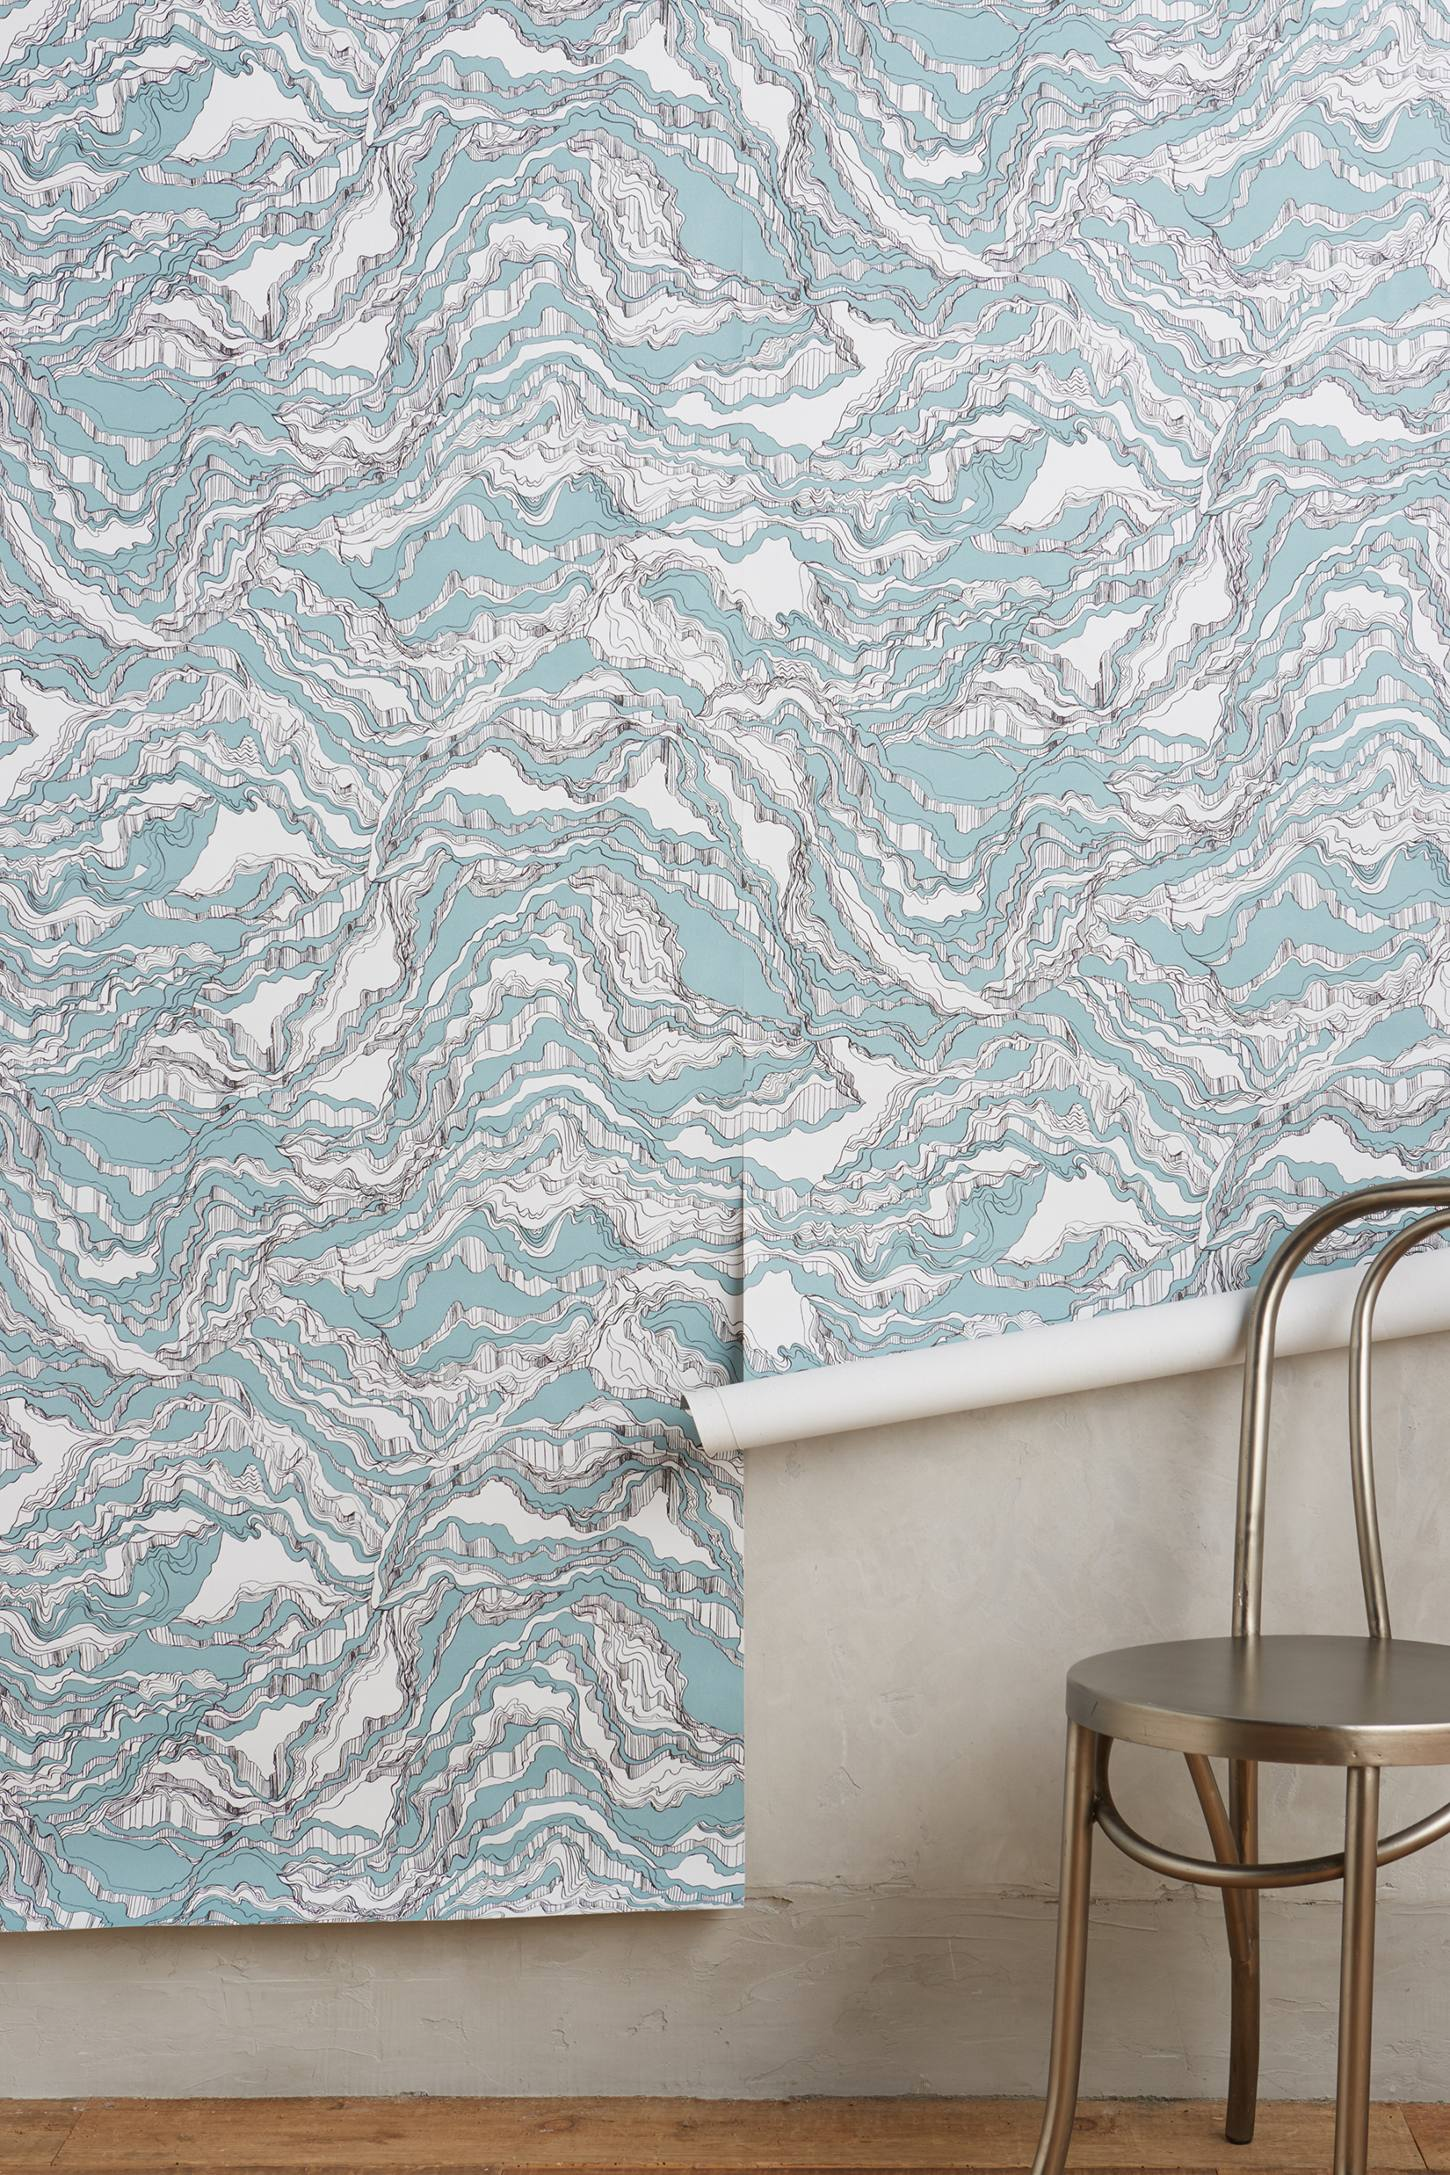 Slide View: 2: Layered Shale Wallpaper